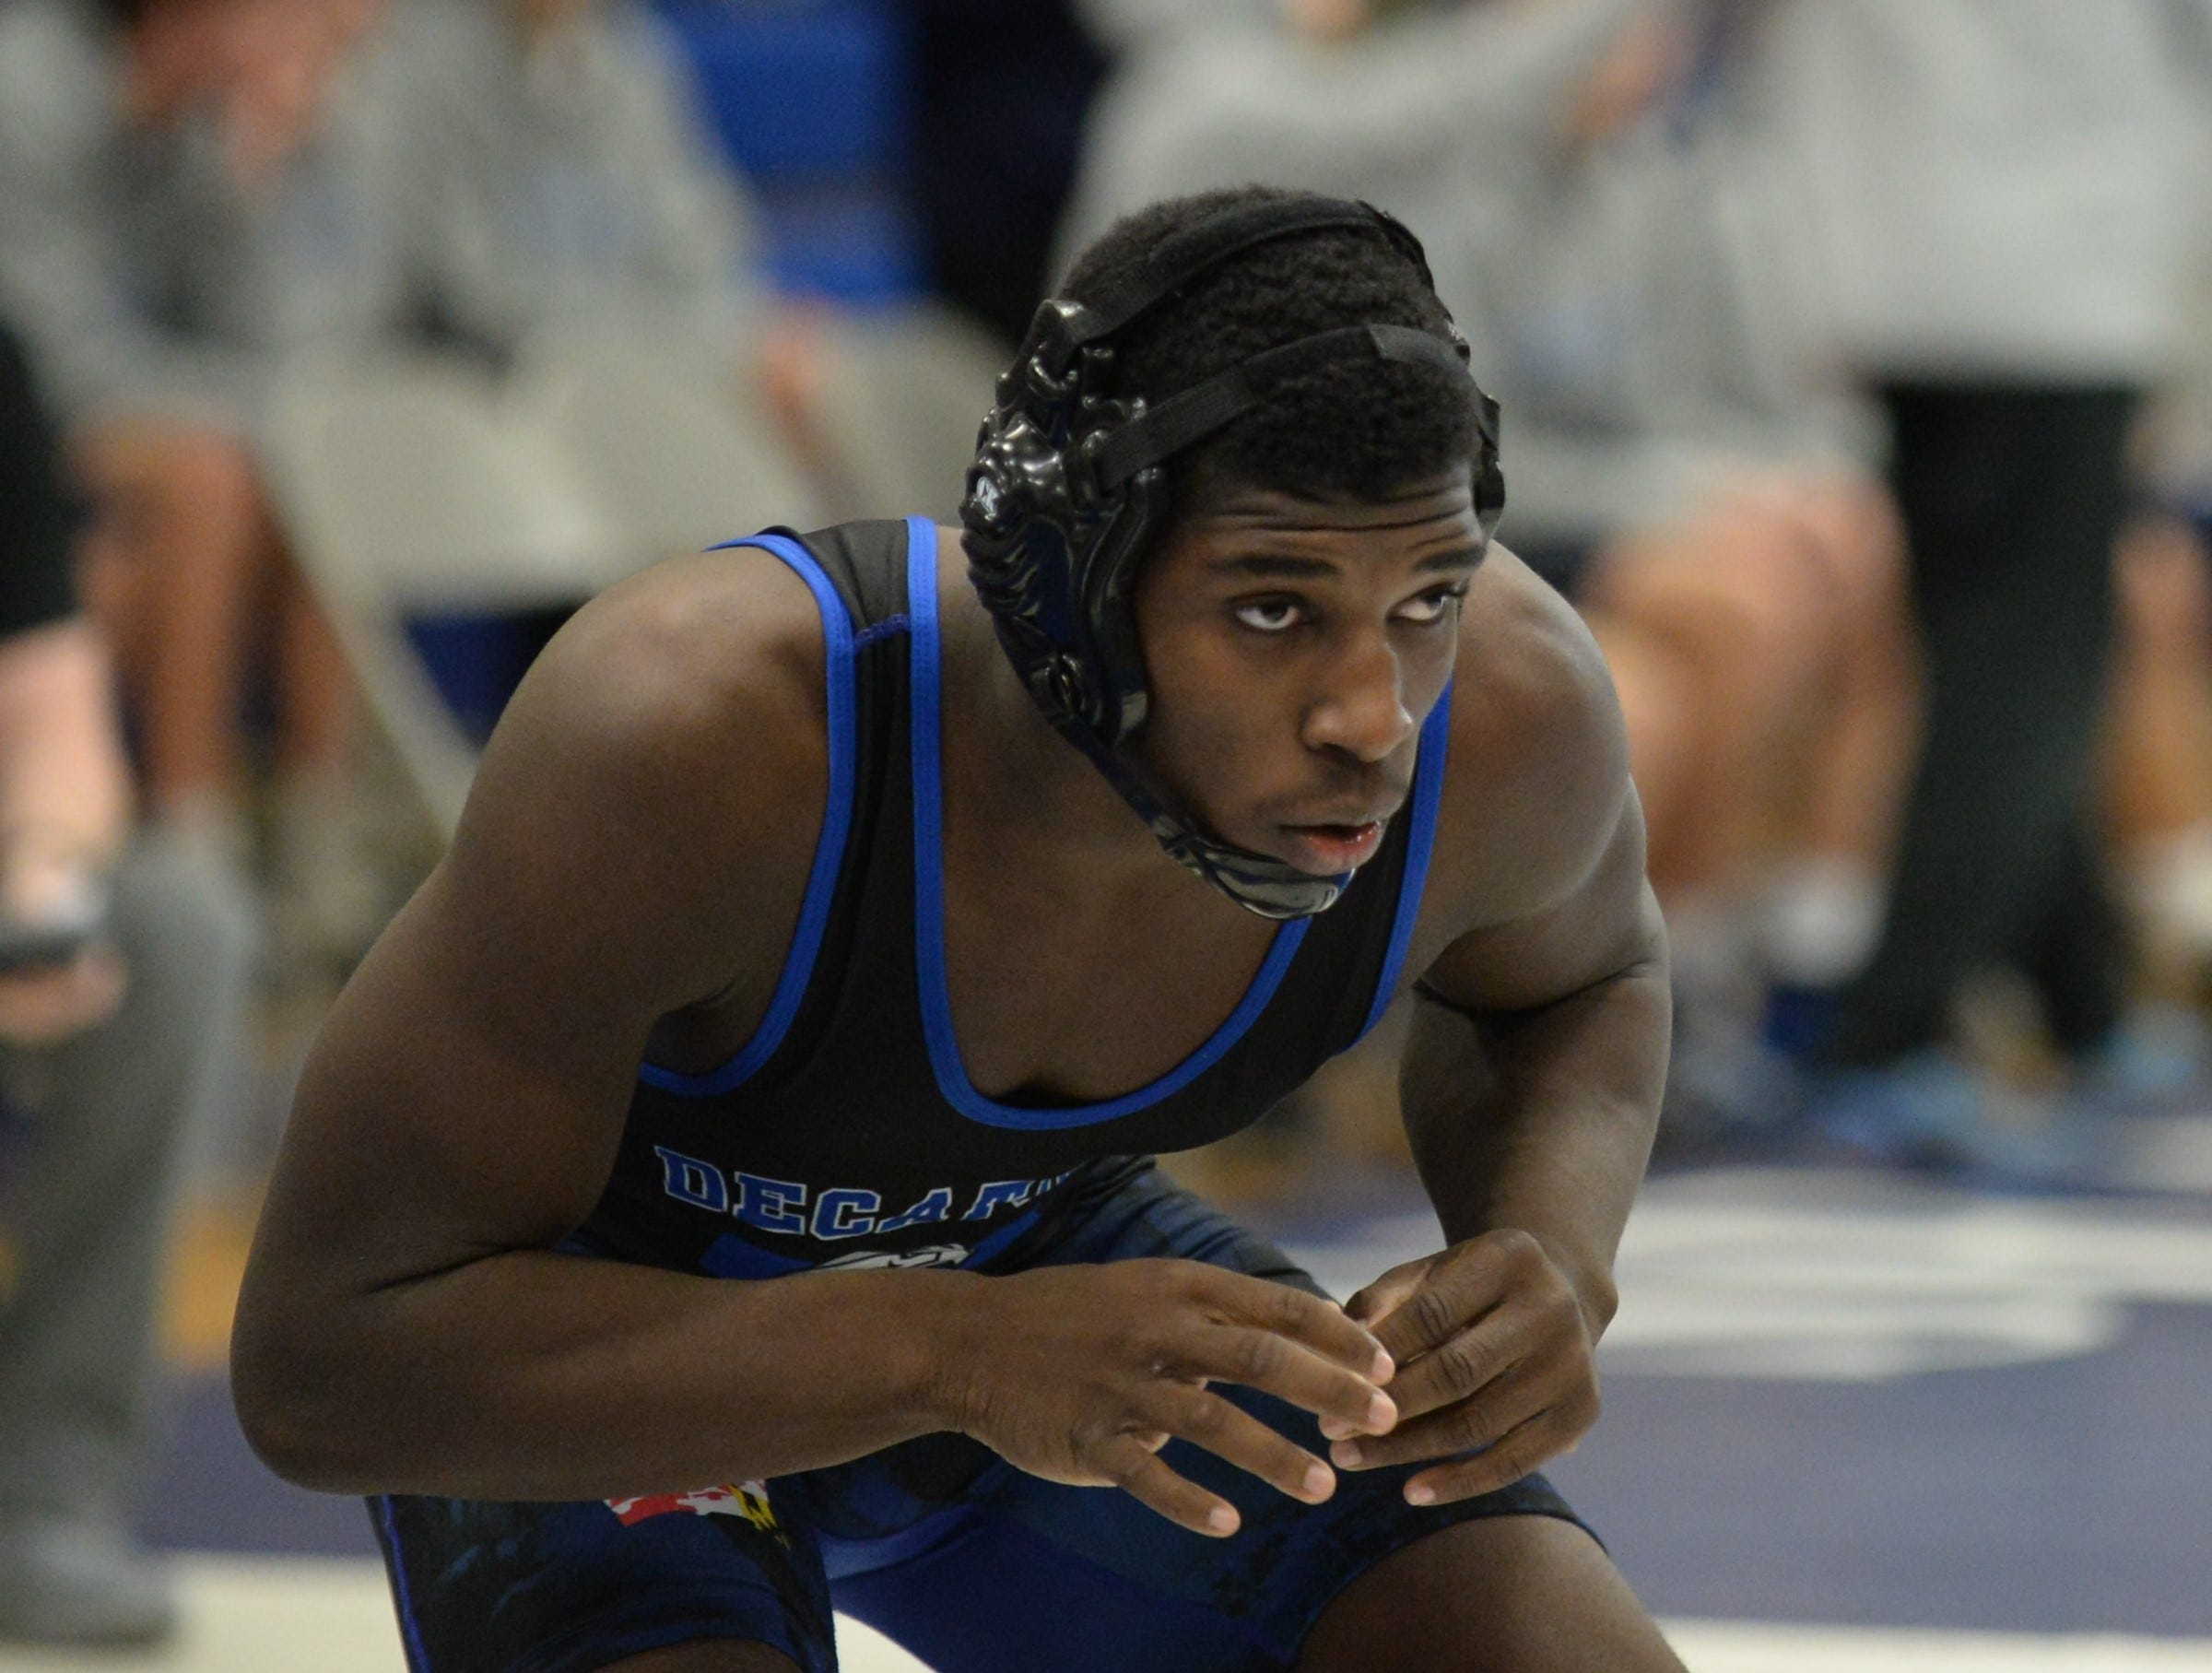 Stephen Decatur wrestler Dellez Smith stares down his opponent during the 3A East Regional Championship on Wednesday, Feb. 6, 2019.